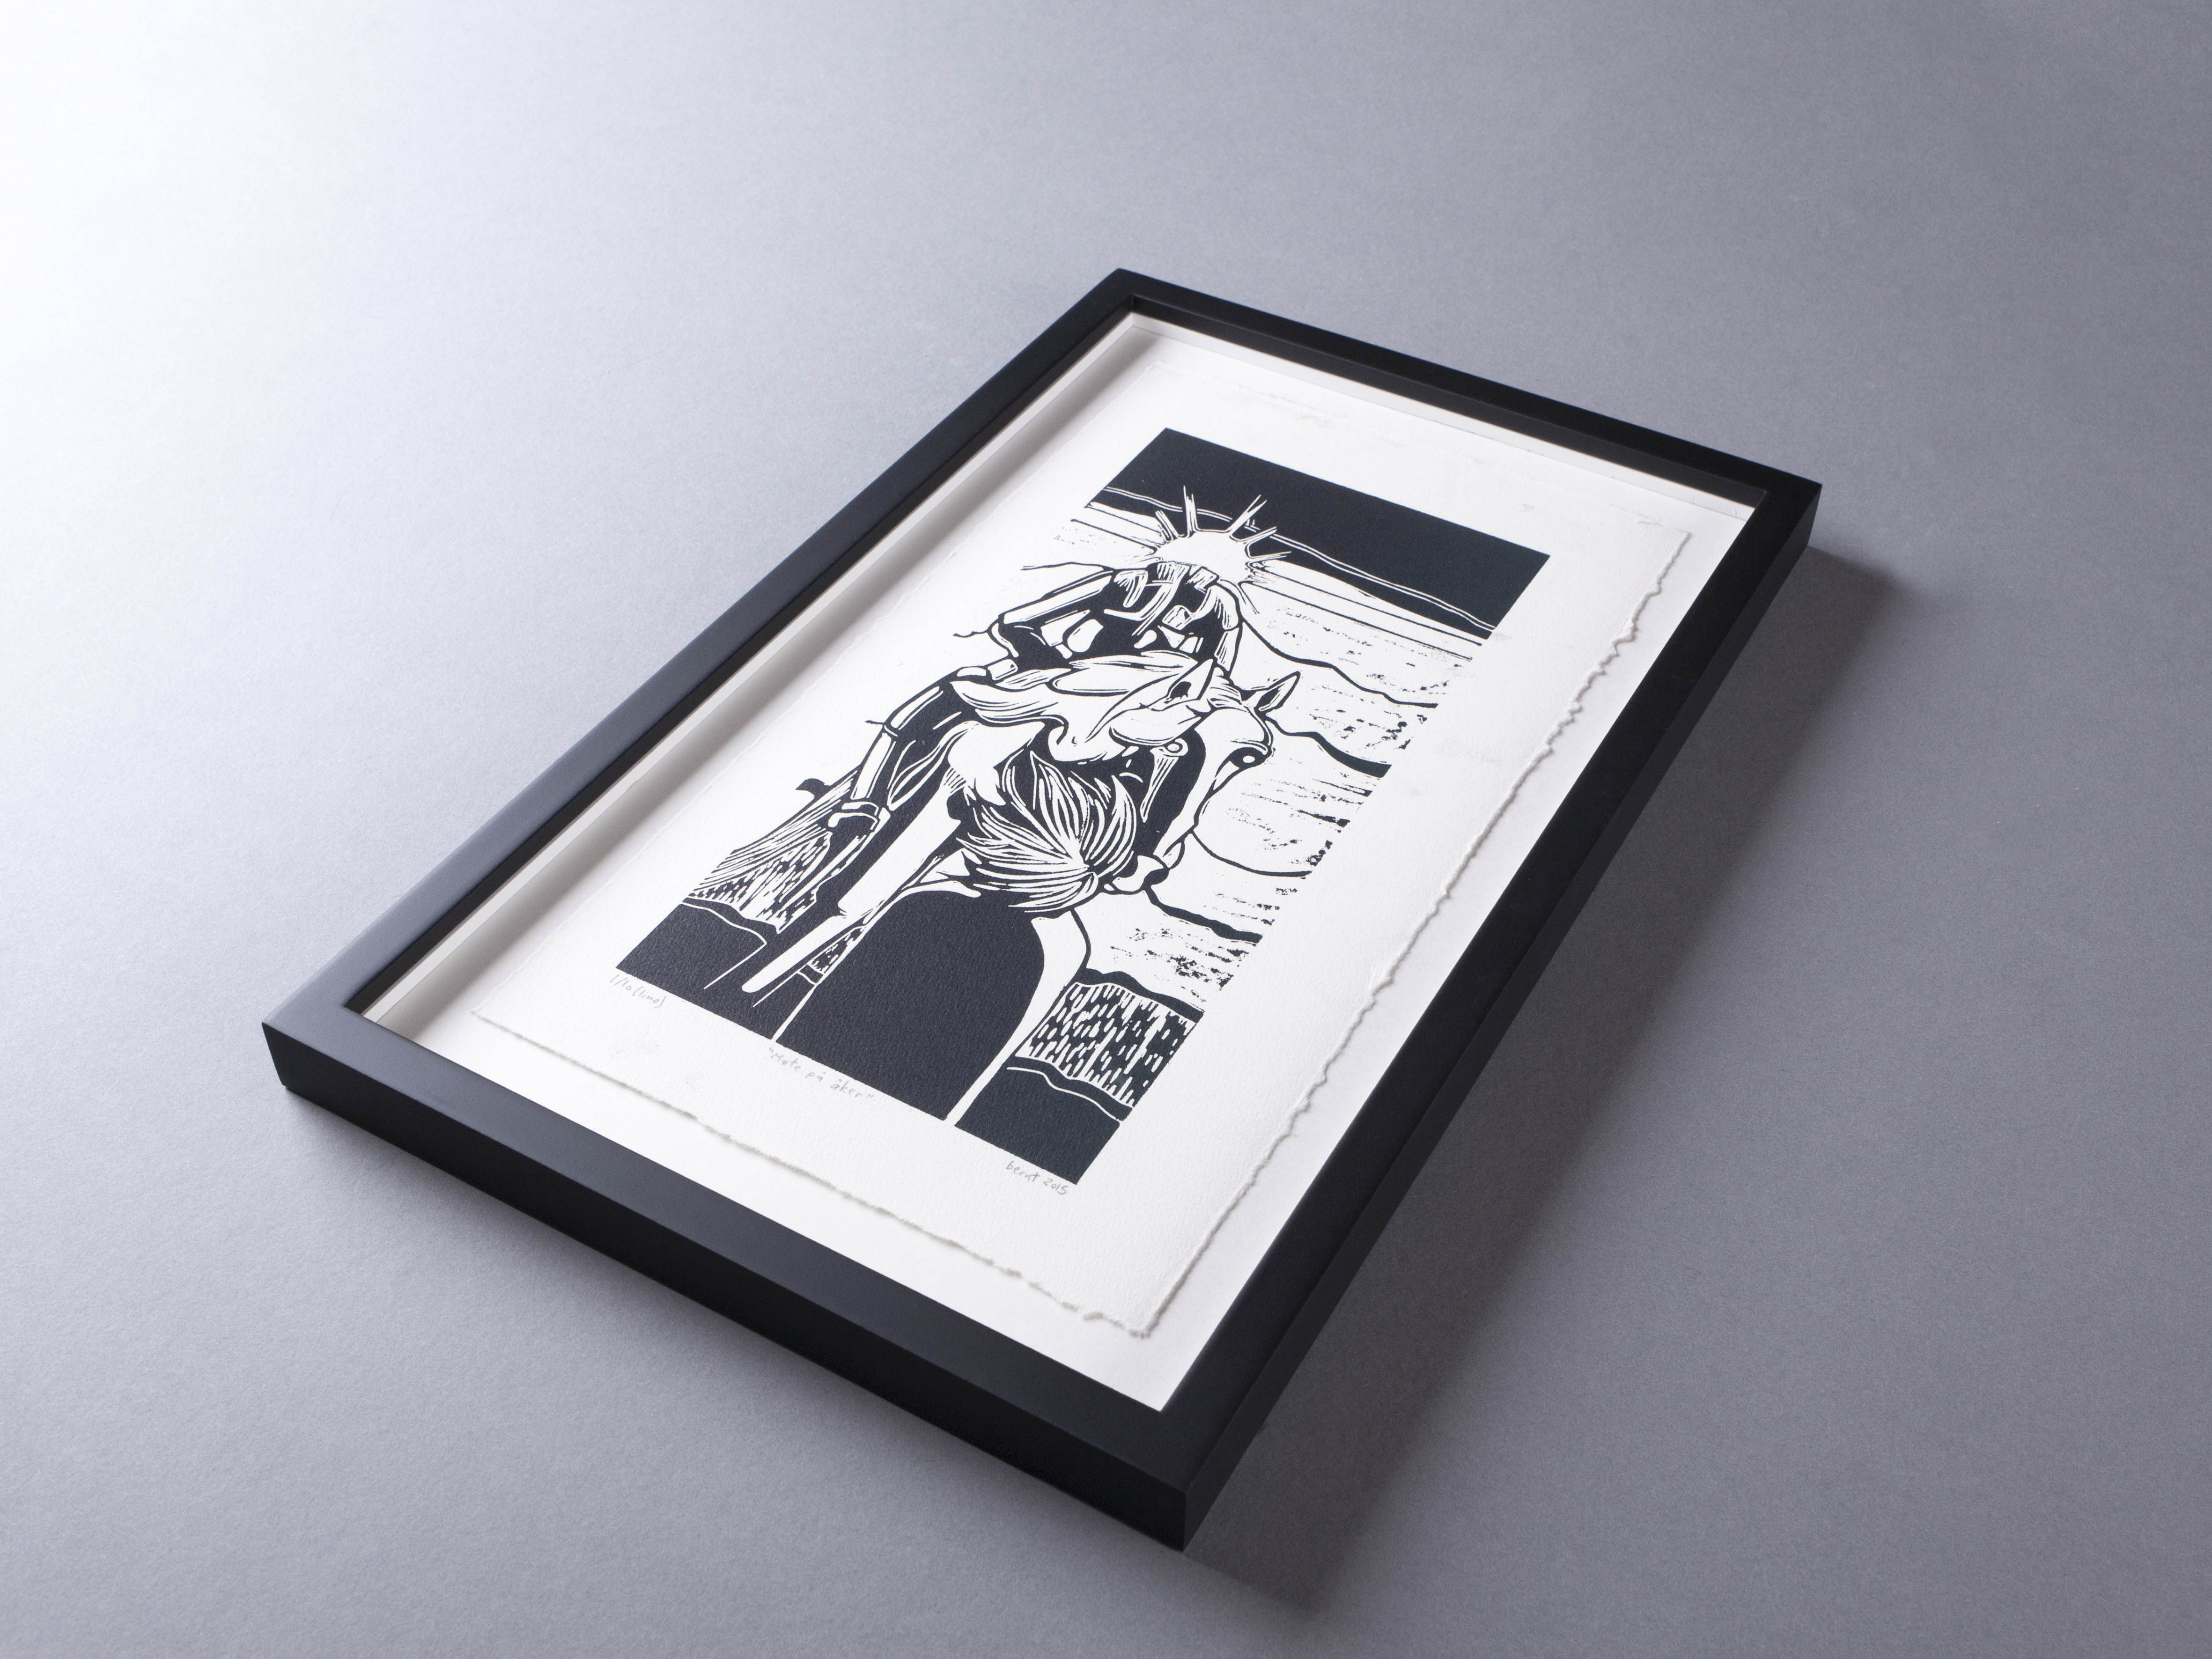 A custom maple wood box frame with artwork floated on archival a custom maple wood box frame with artwork floated on archival mount board and a hand jeuxipadfo Image collections